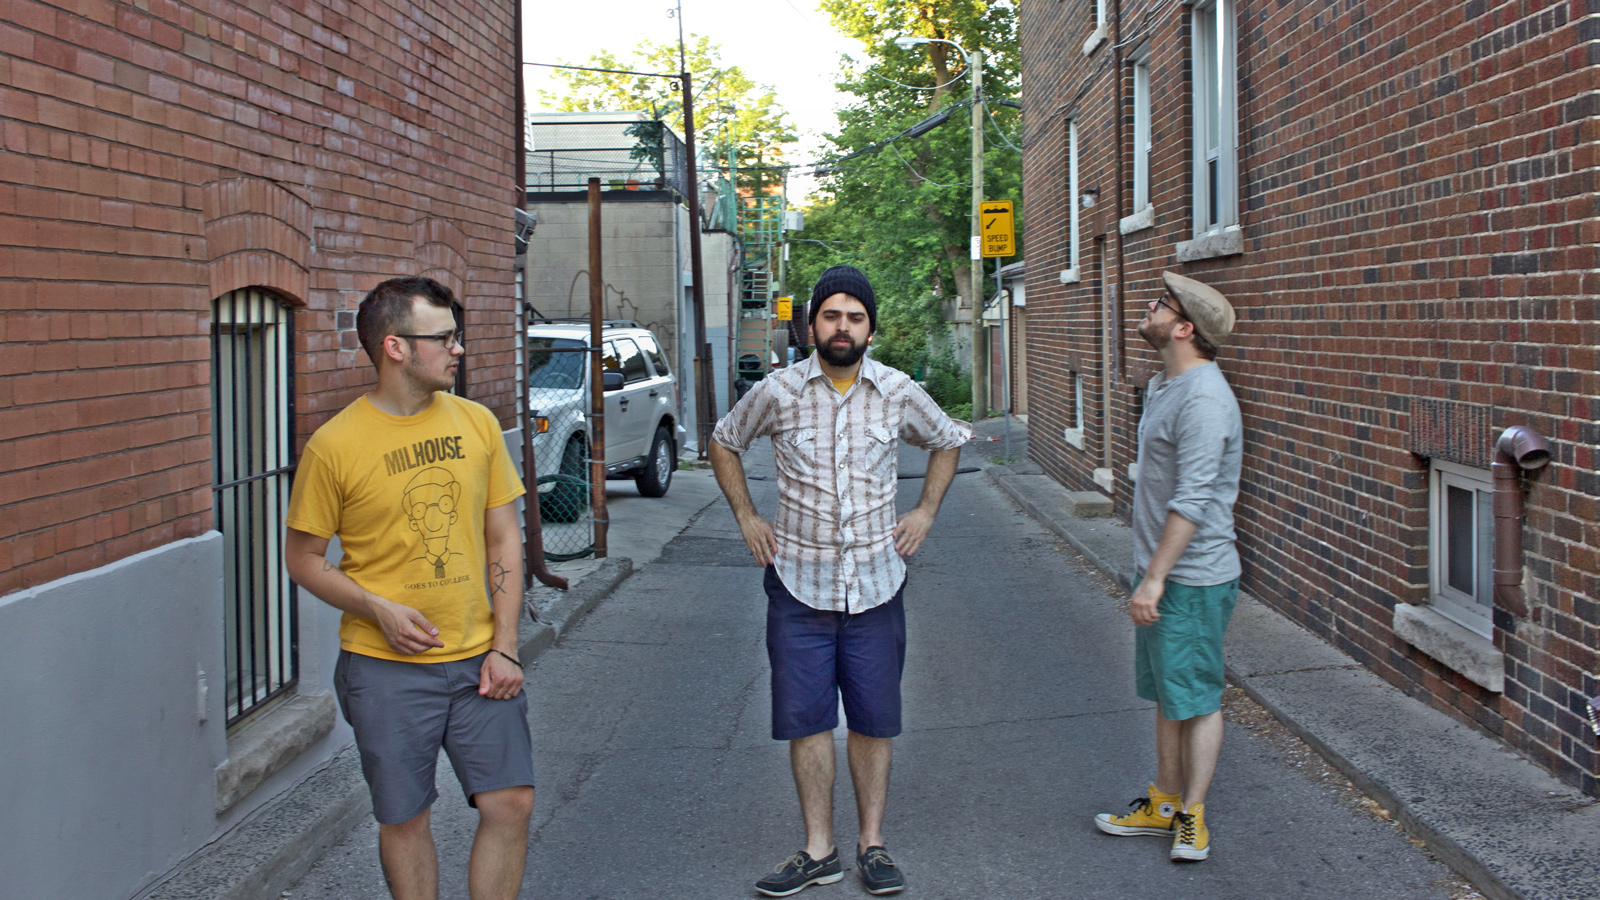 stephen, jake, and pat stand a few feet apart, not looking at the camera, with an alley stretching on behind them